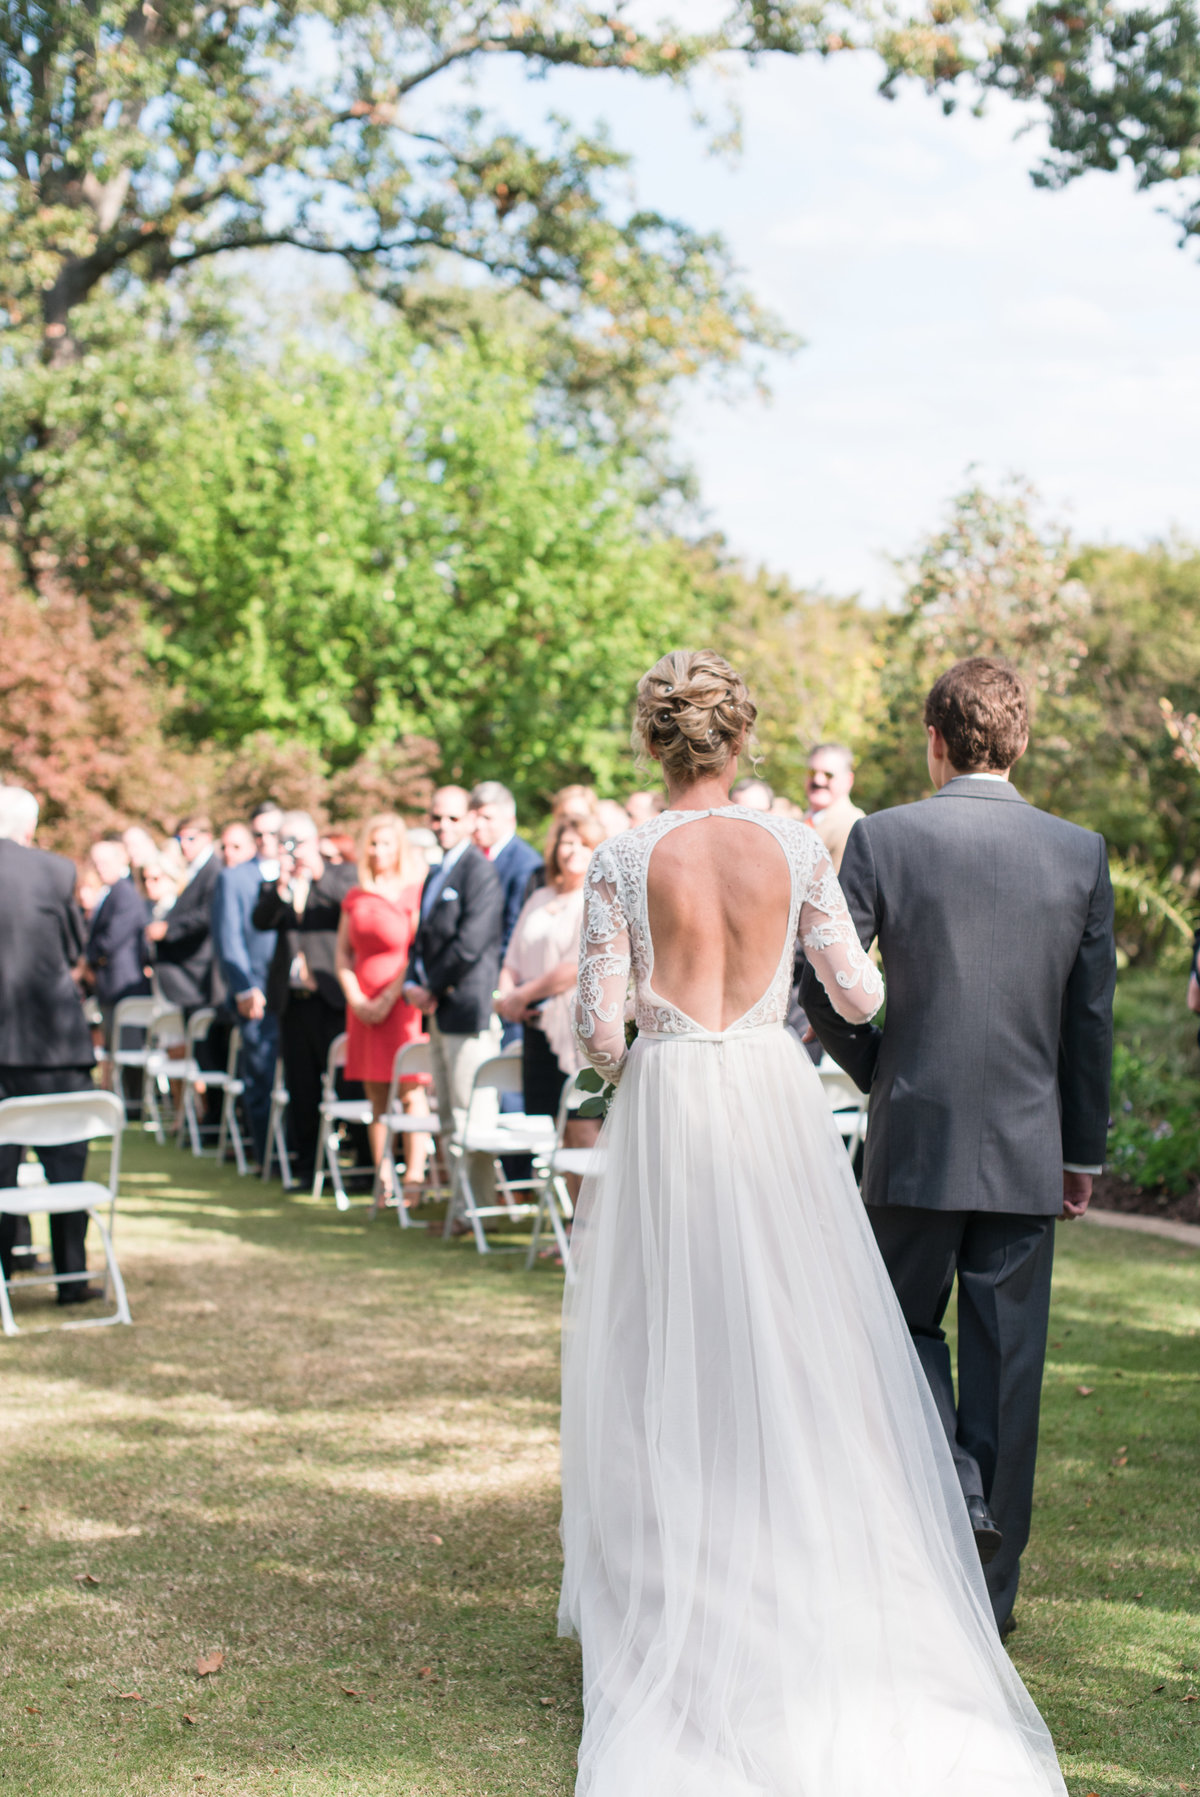 Fletcher_Park_Raleigh_NC_Wedding0026